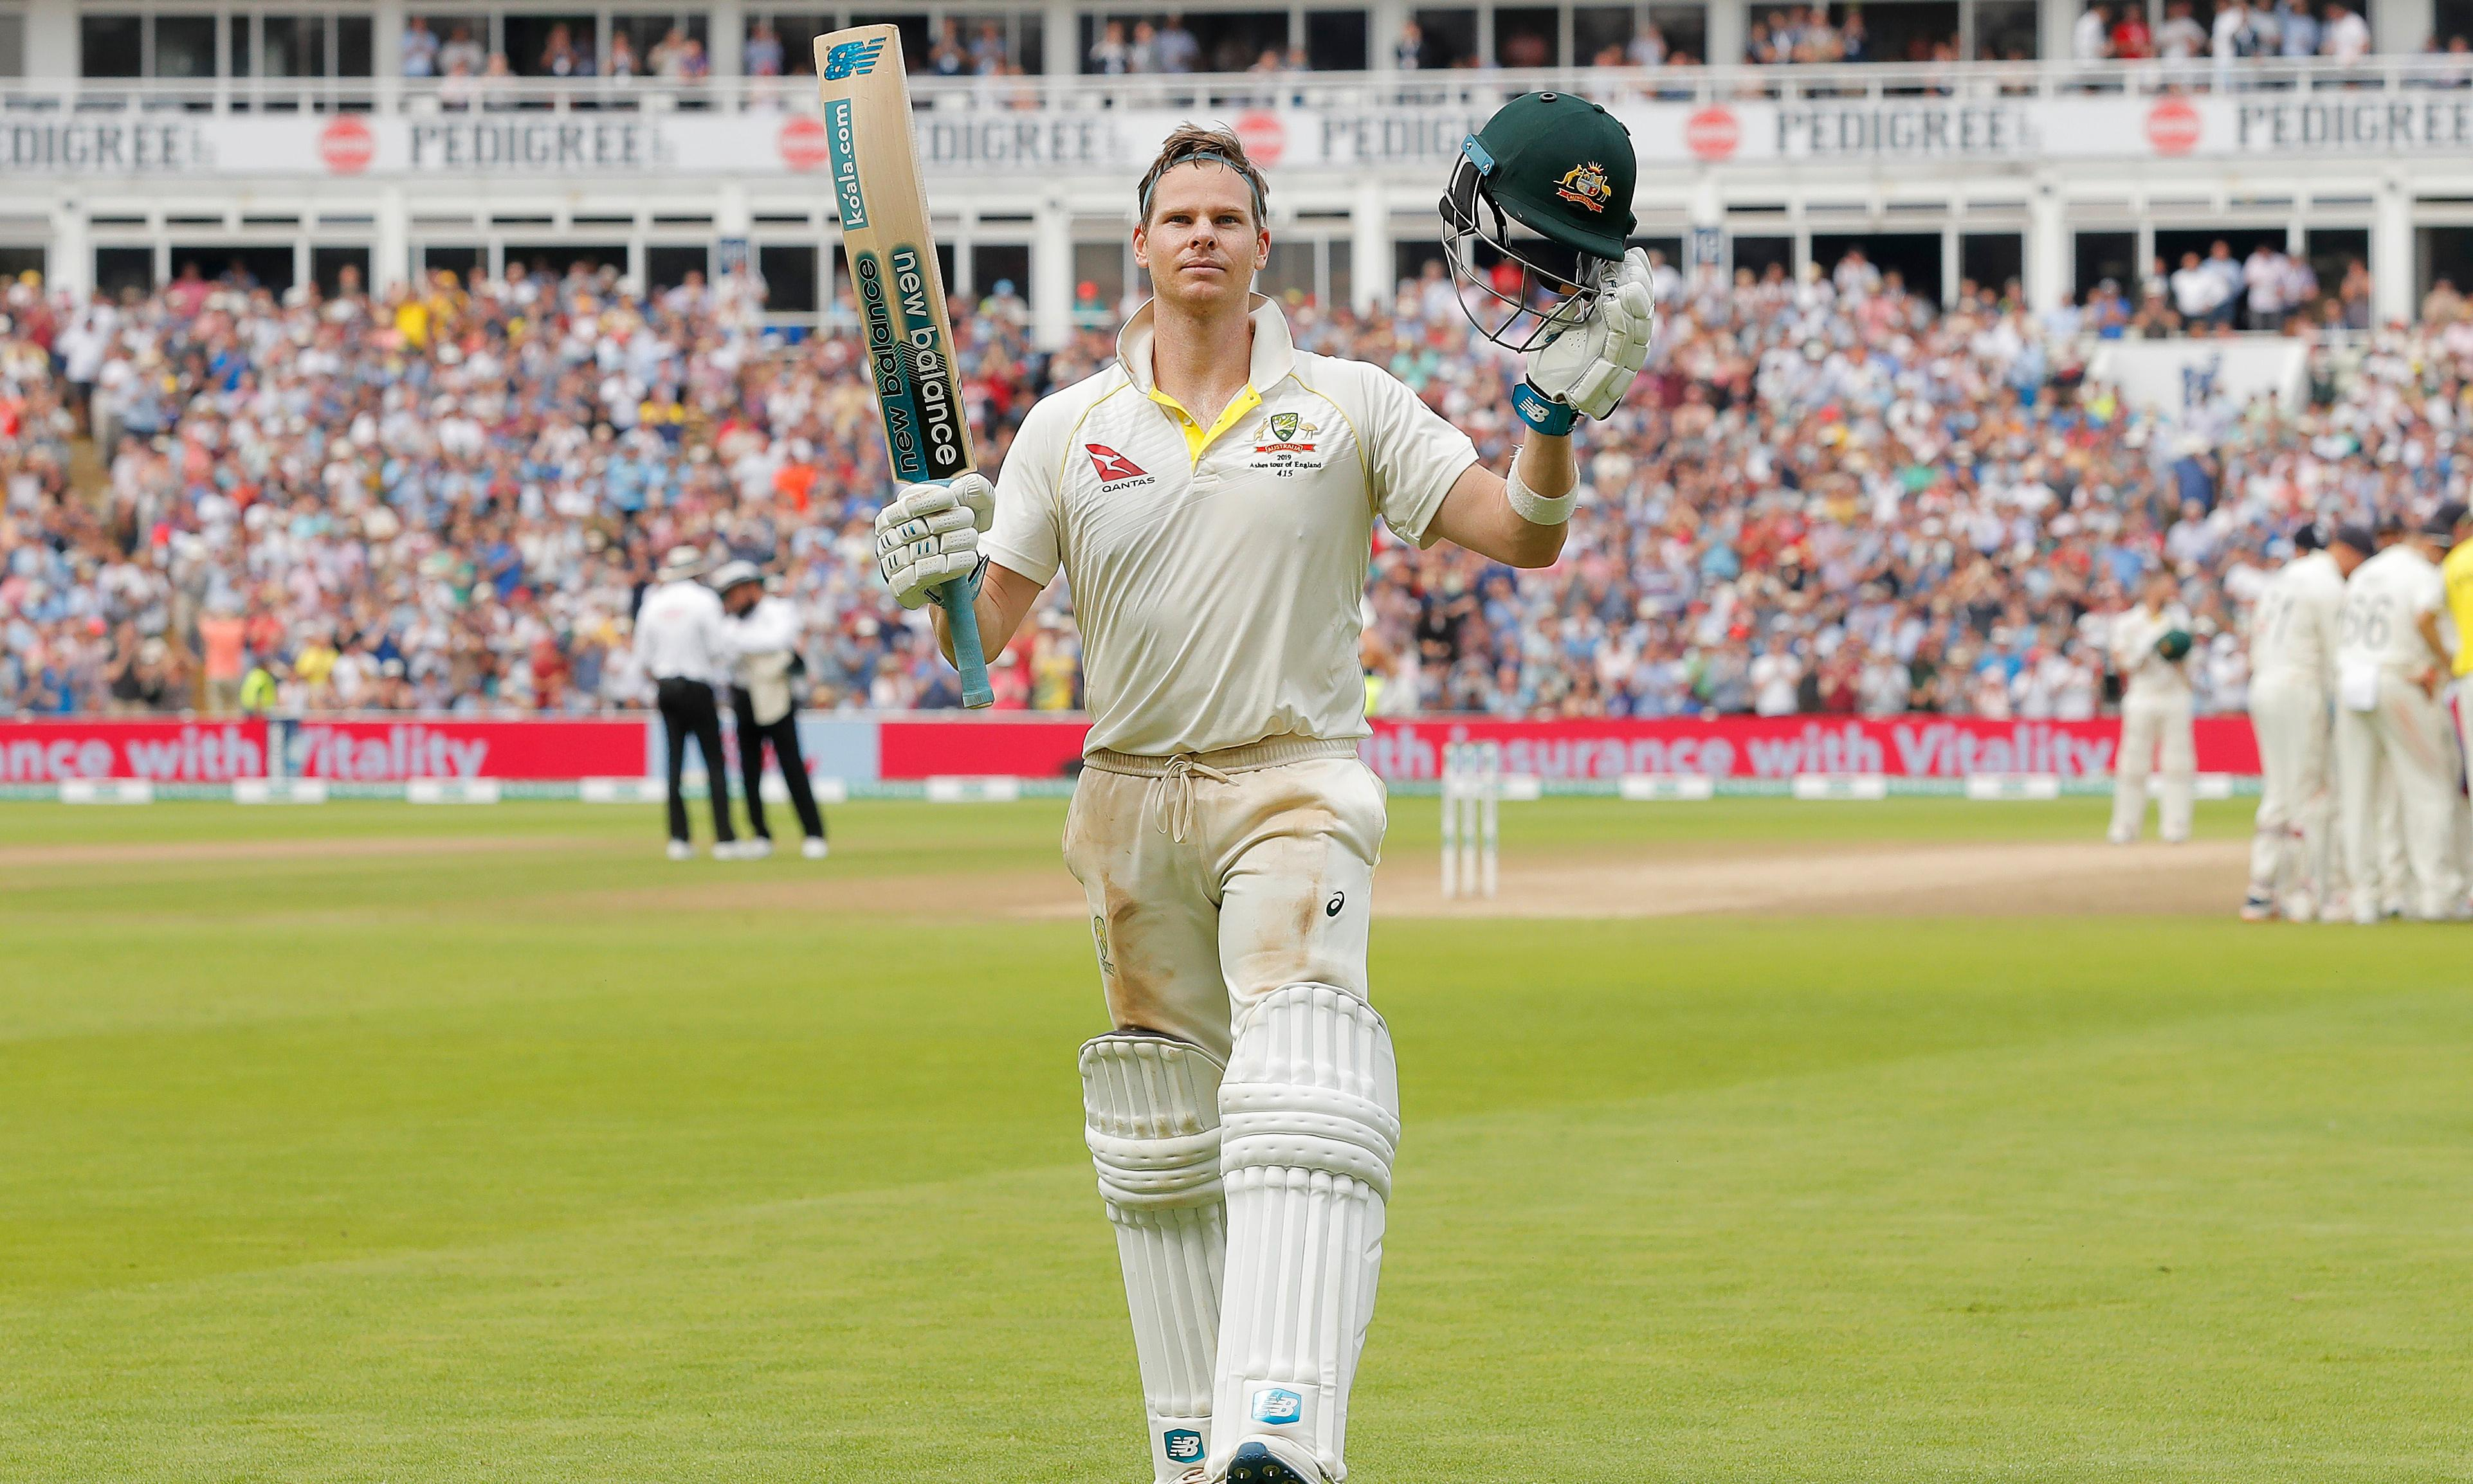 Steve Smith bats in space of his own, no historical comparison required